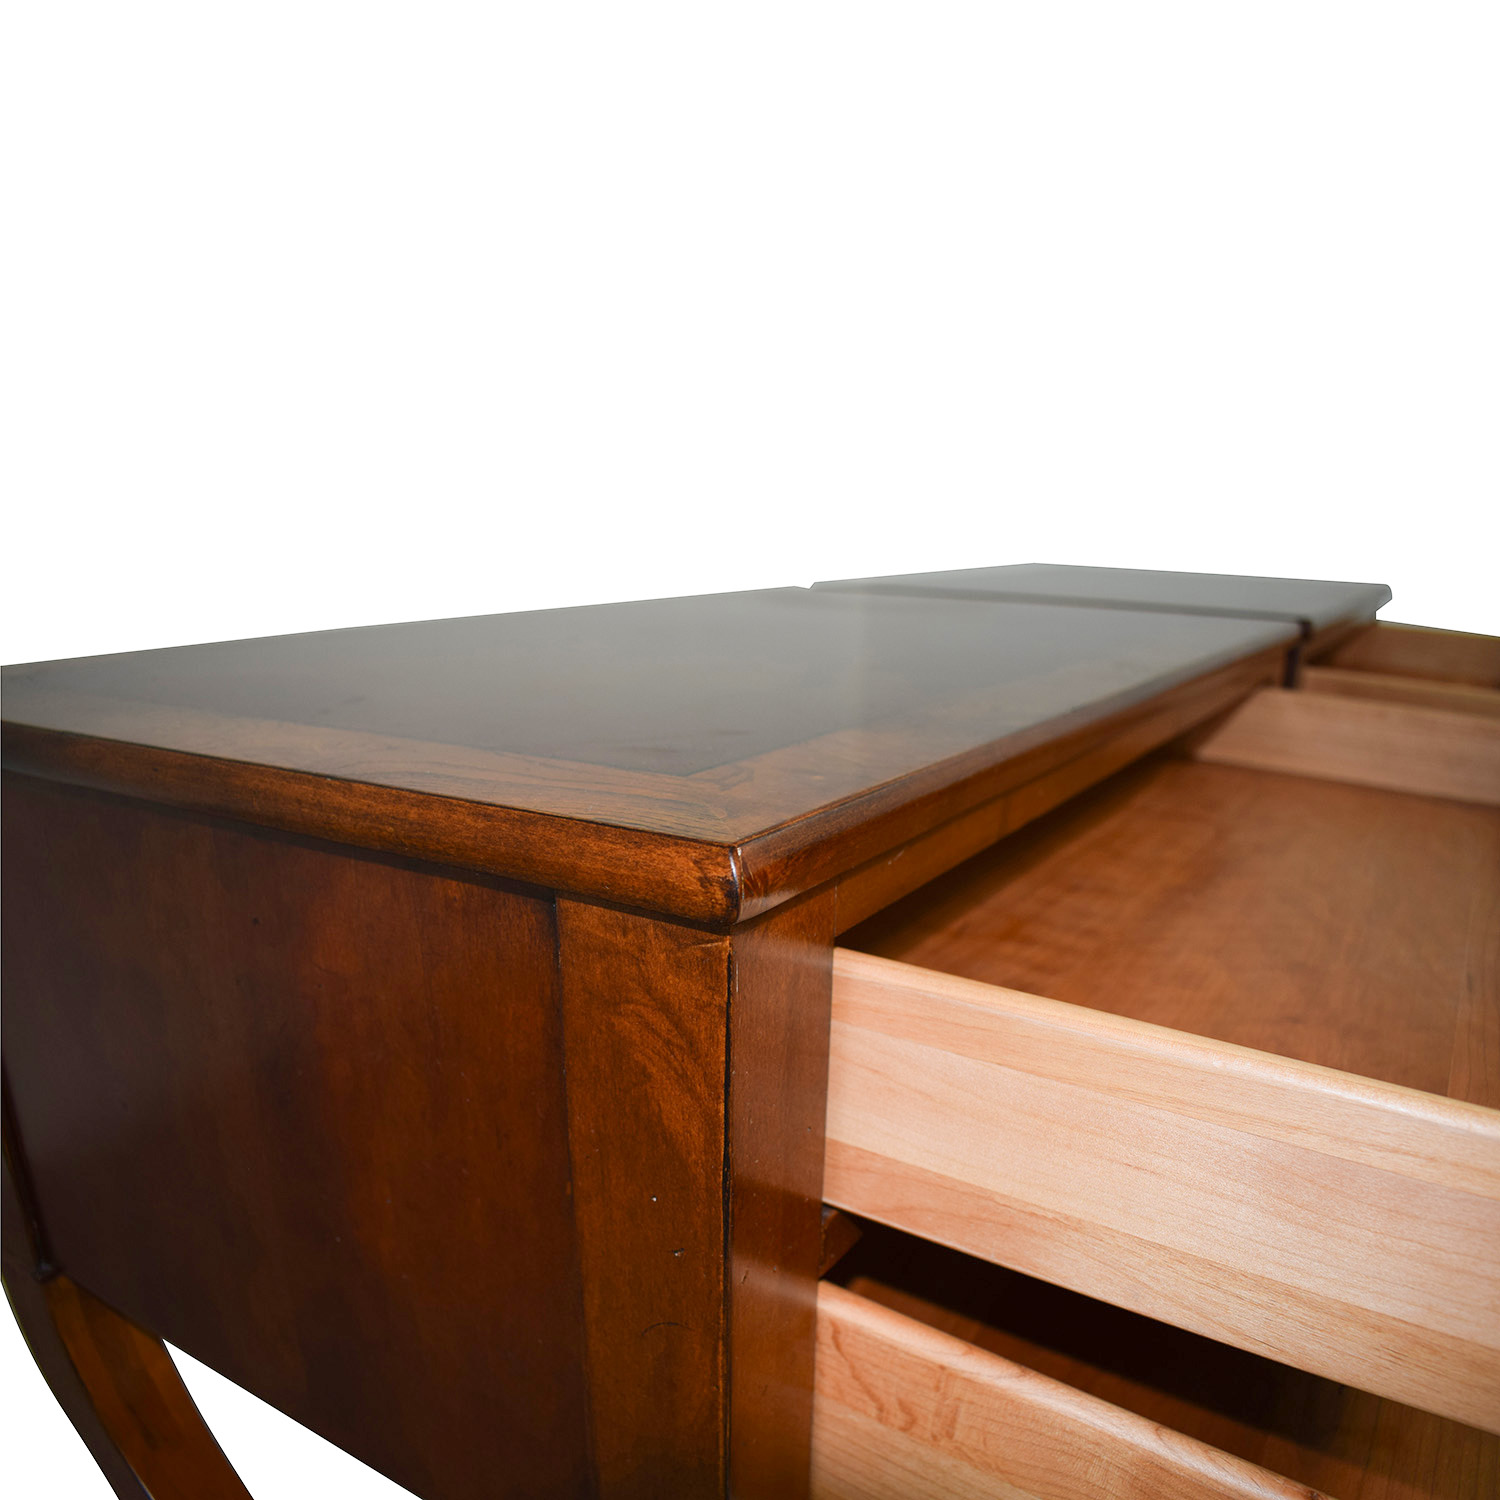 Ethan Allen Ethan Allen Connolly Two-Drawer Night Tables for sale